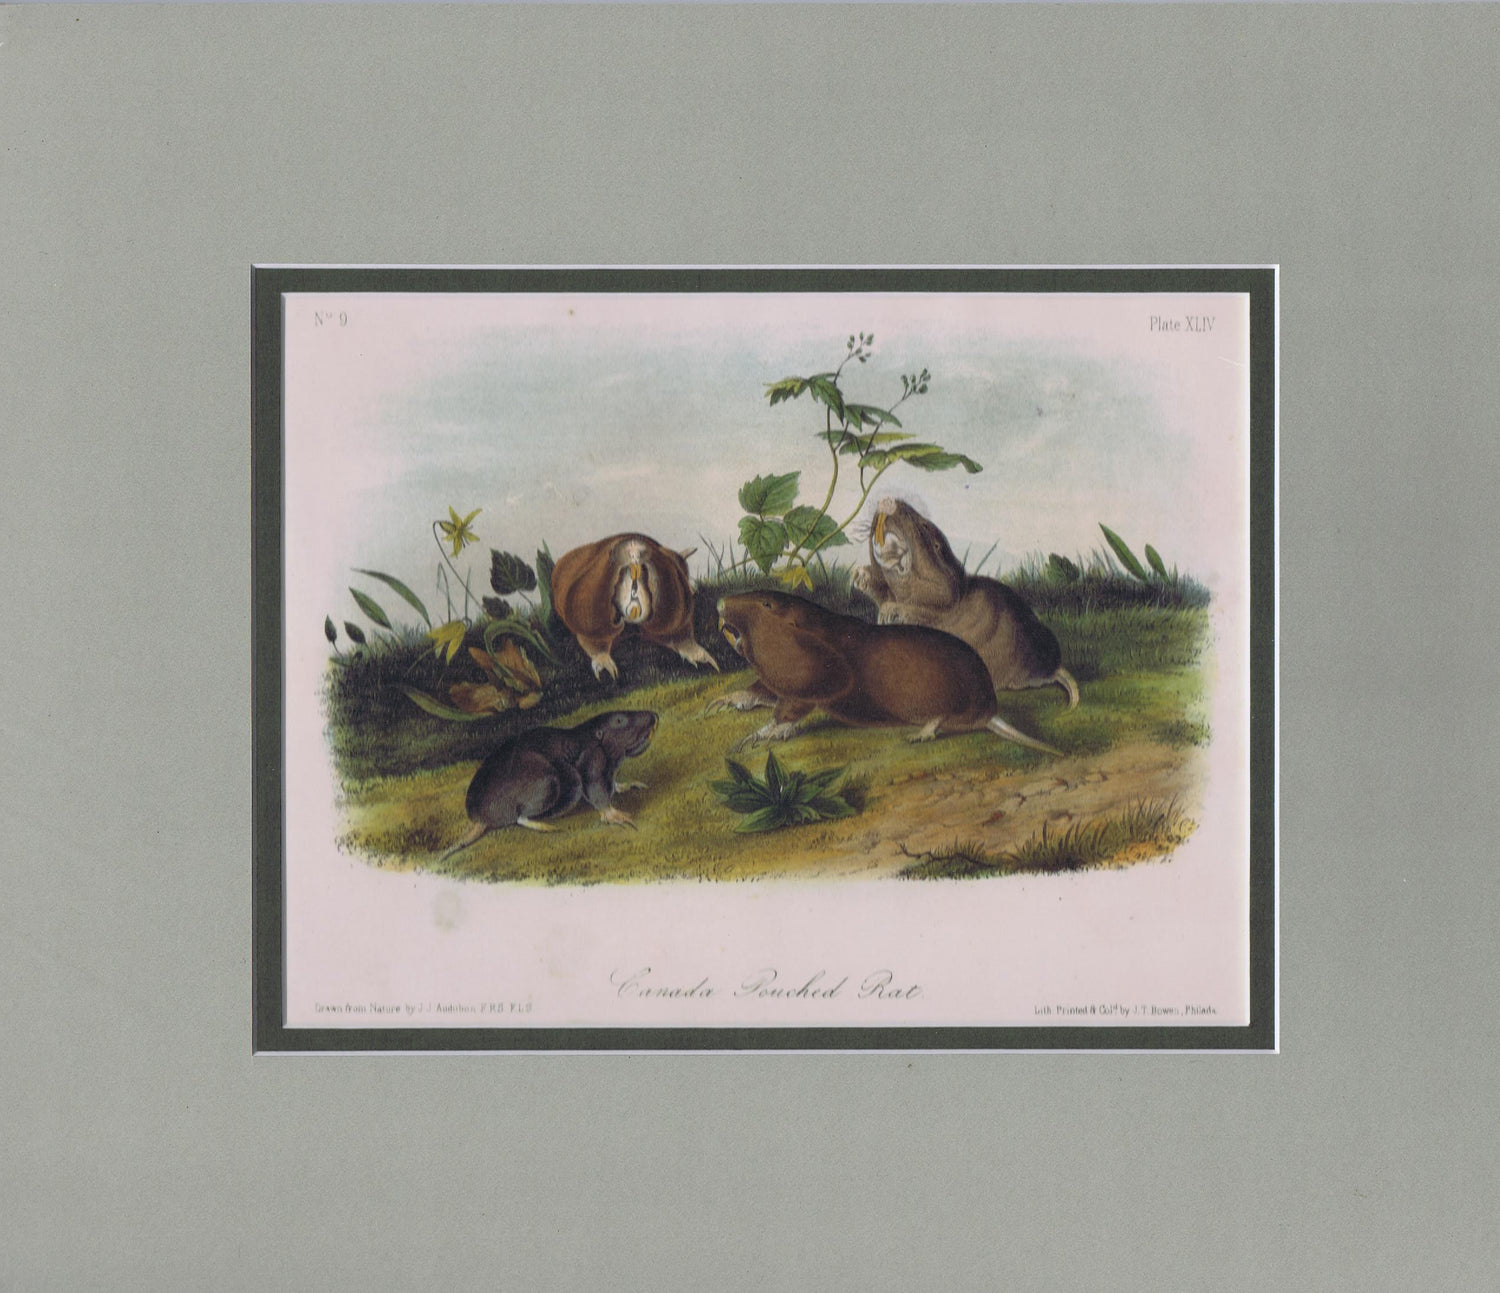 Original Audubon Octavo Quadruped Matted, Canada Pouched Rat, plate 44